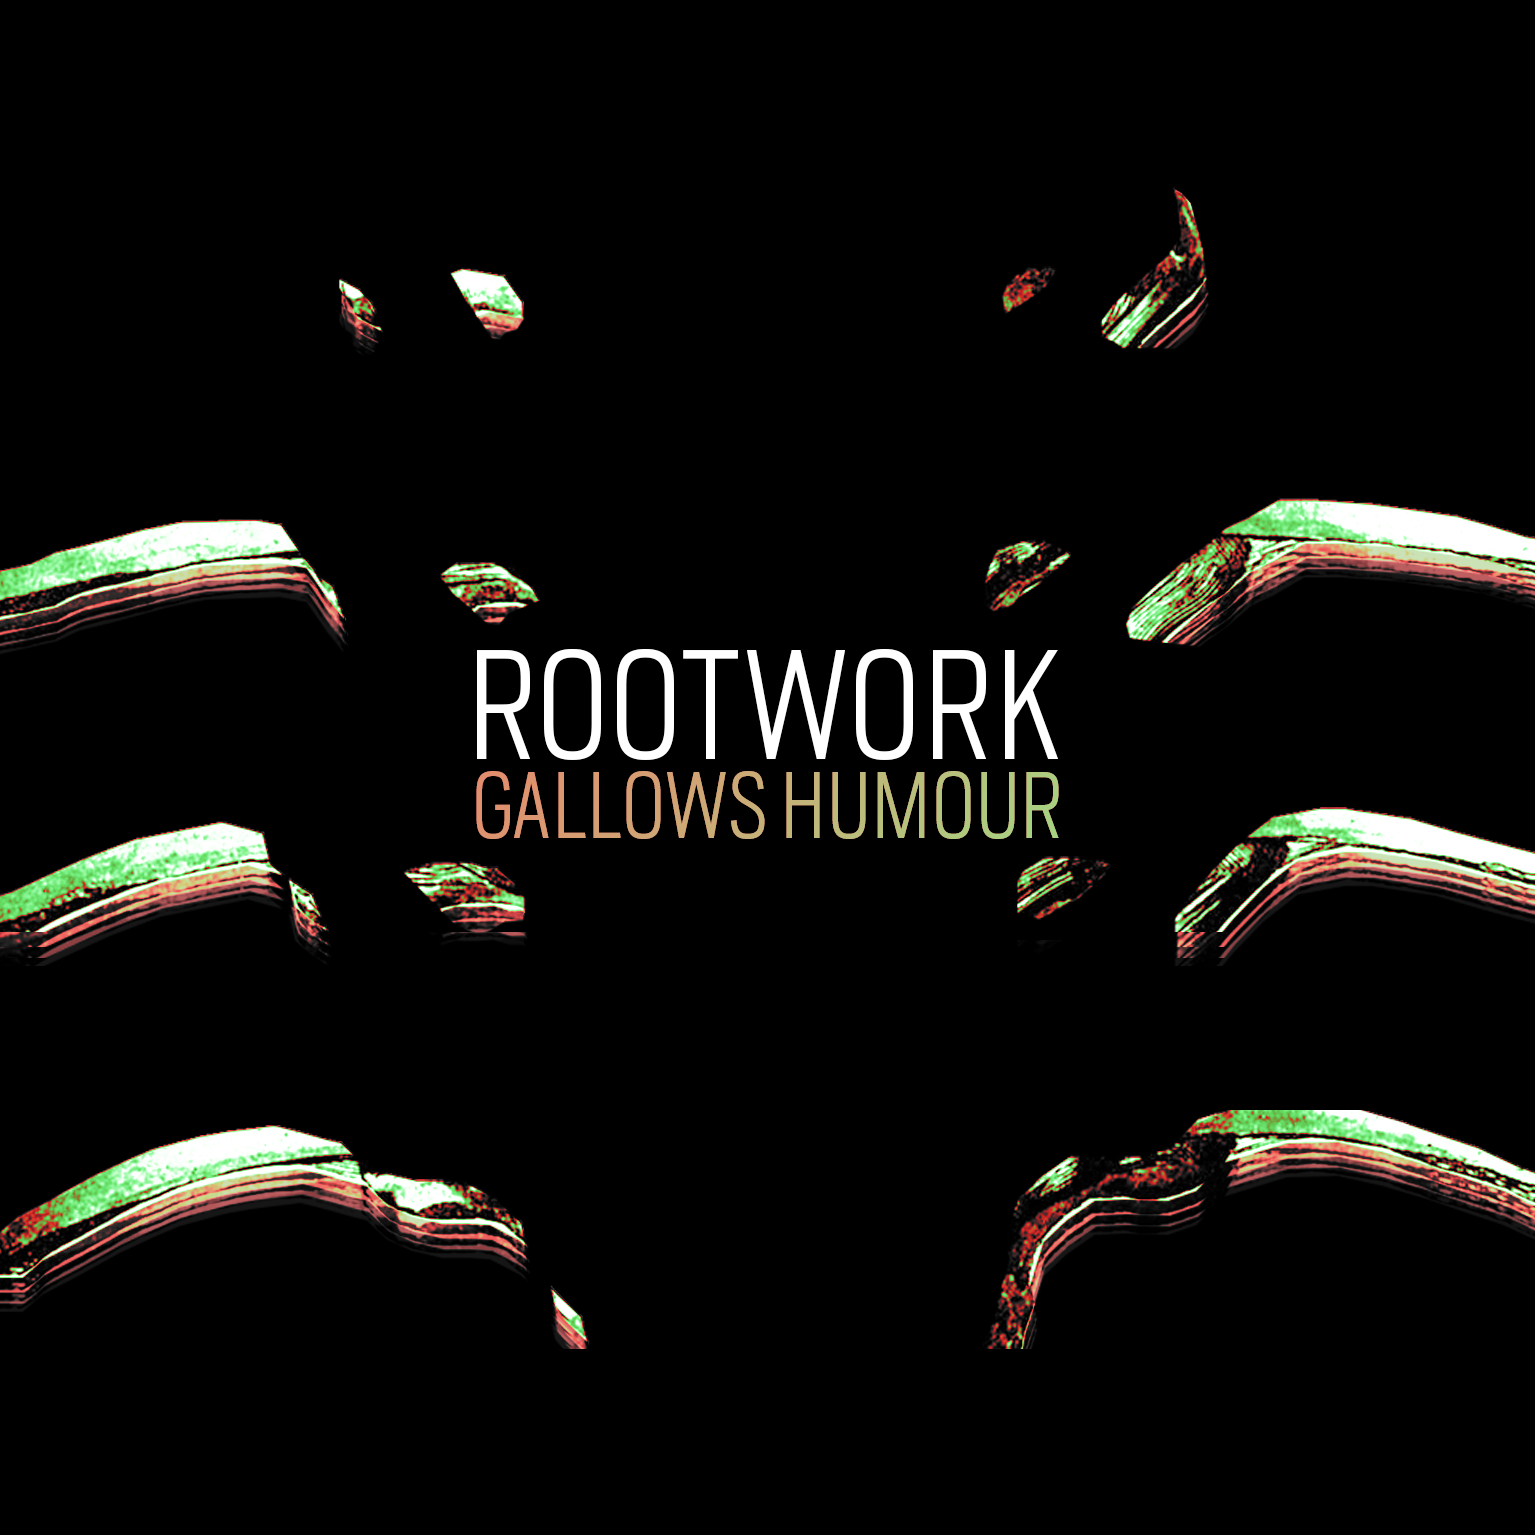 Review of Rootwork's E.P titled 'Gallows Humour'